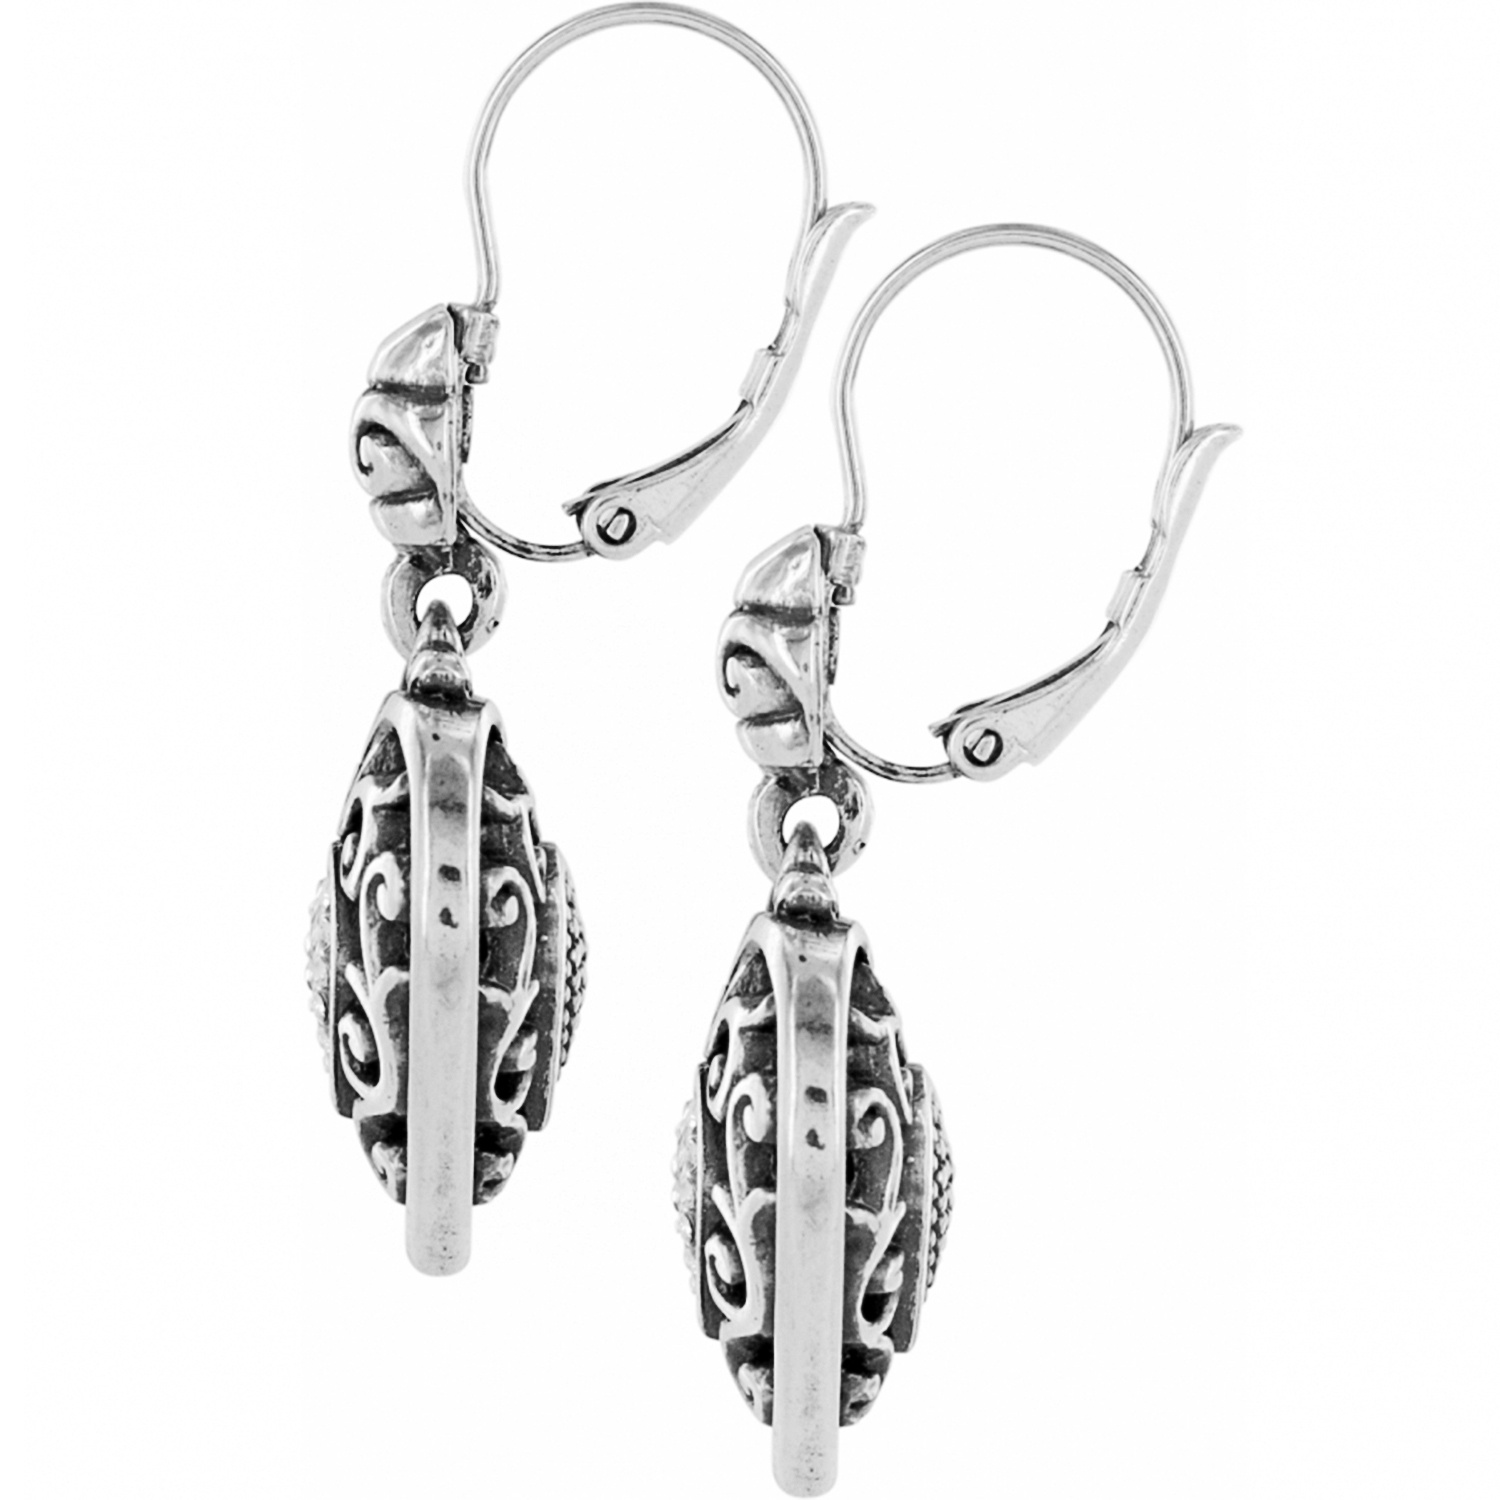 Reno Heart Leverback Earrings